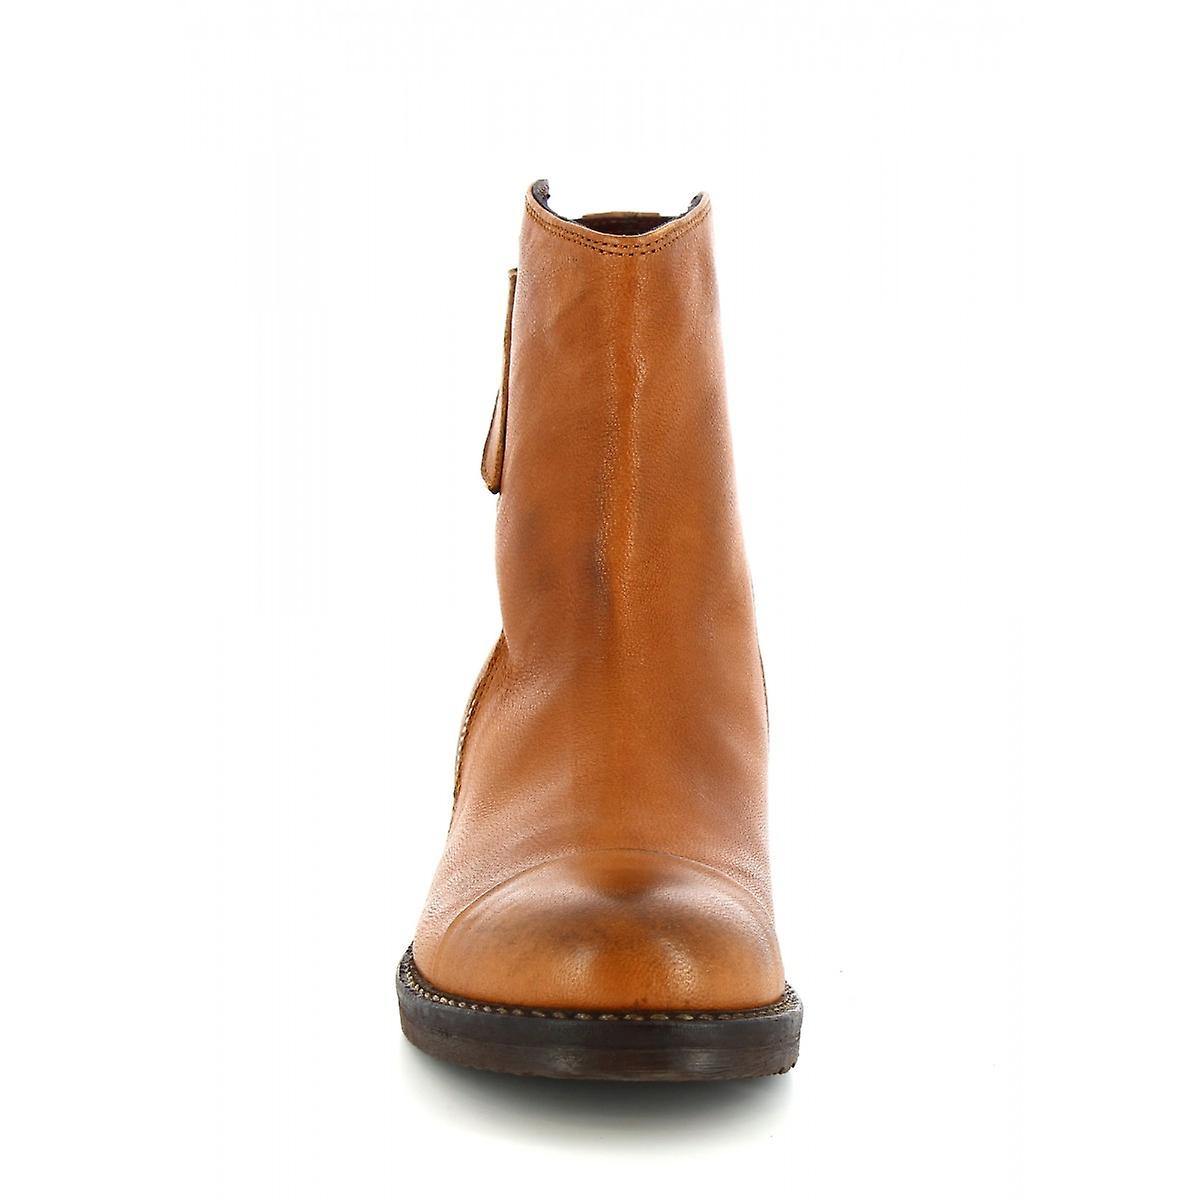 Leonardo Shoes Women's handmade ankle boots tan calf leather with side zip NU4v6